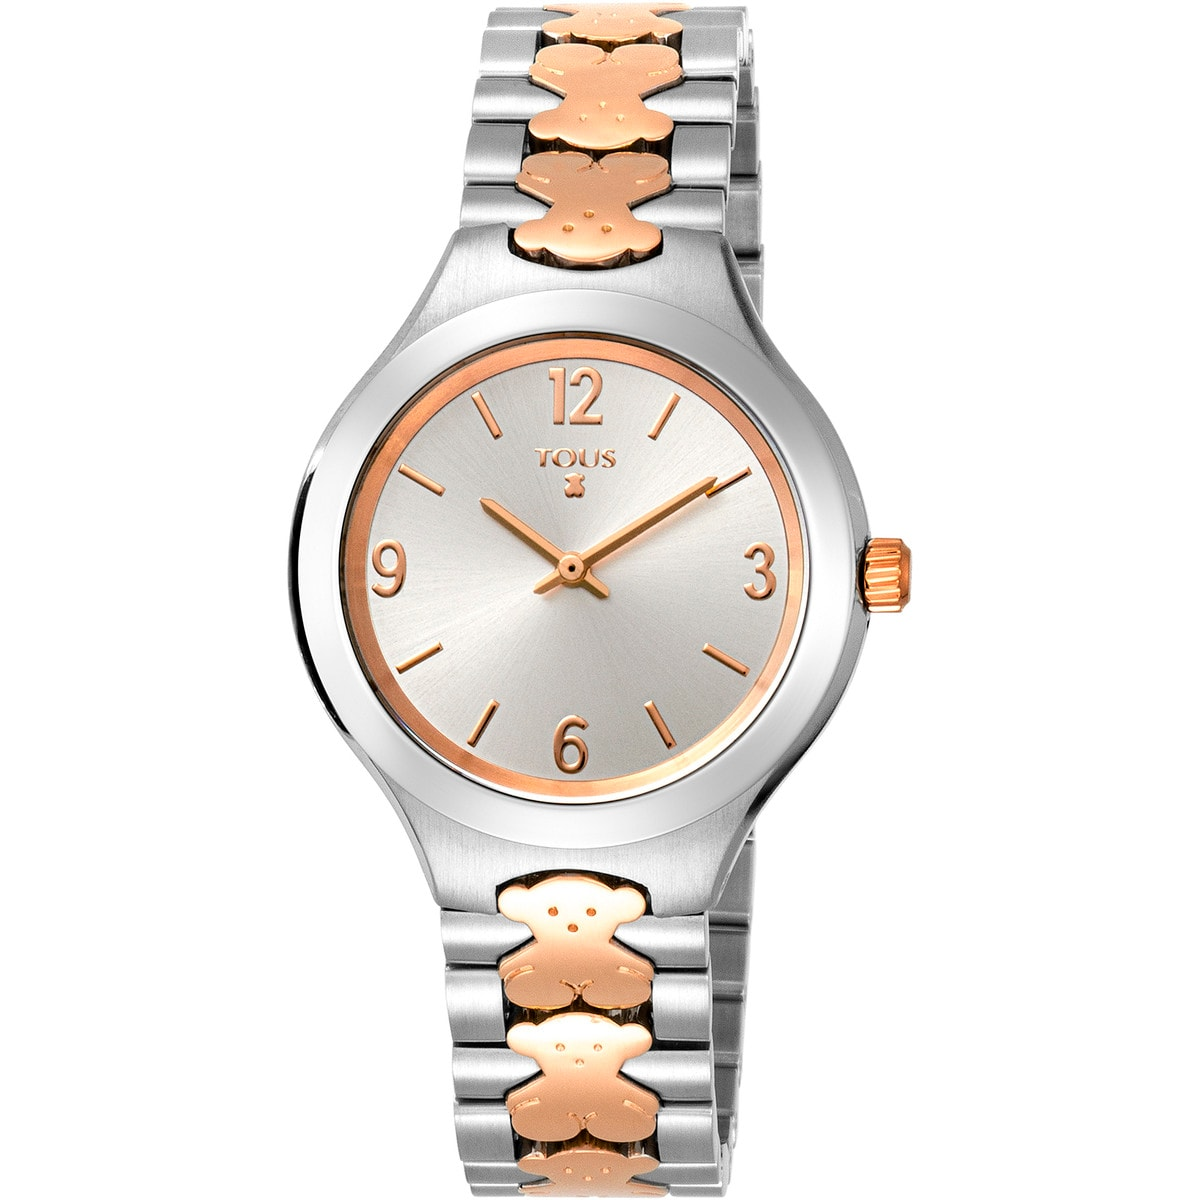 Two-tone pink IP/Steel New Praga Watch